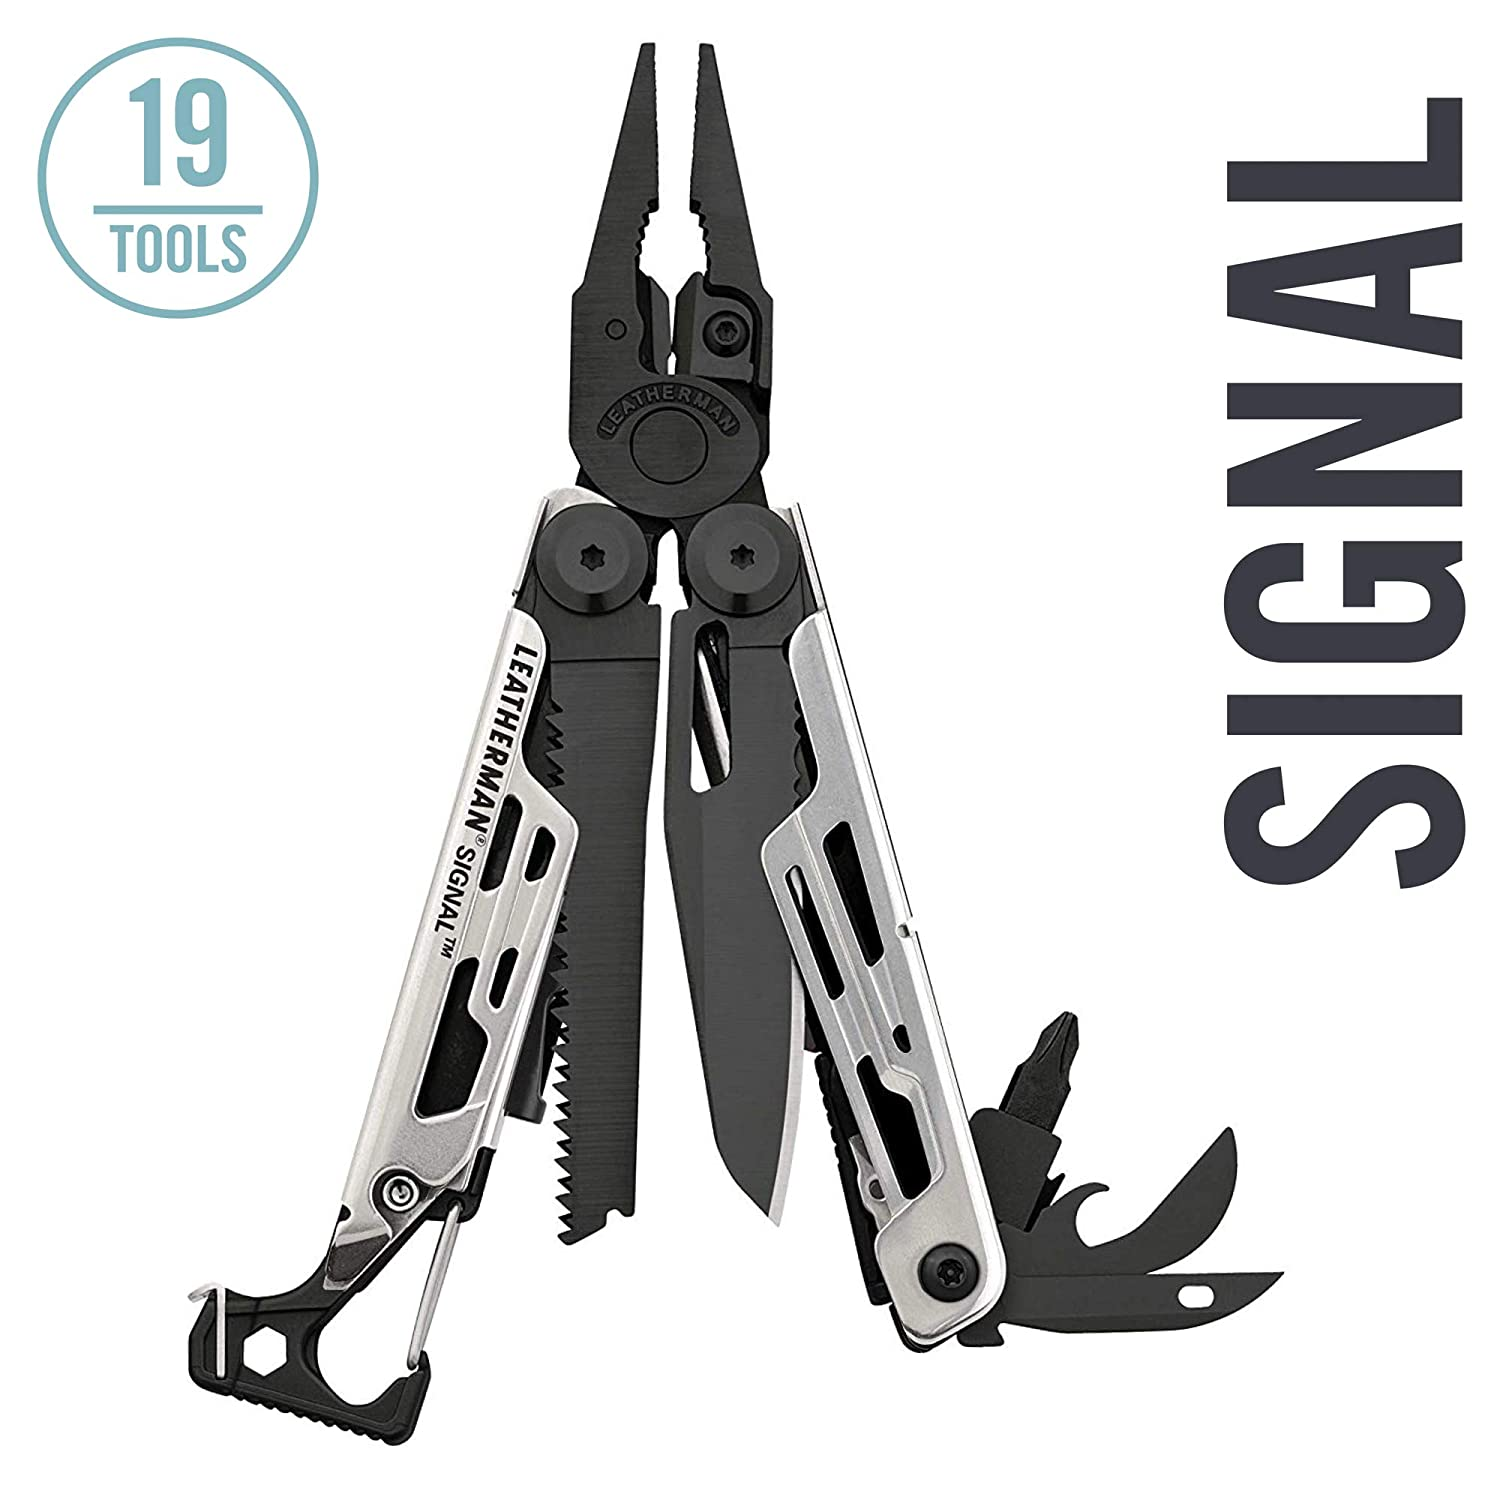 LEATHERMAN – Signal Camping Multitool with Fire Starter, Hammer, and Emergency Whistle, Limited Edition Black Silver